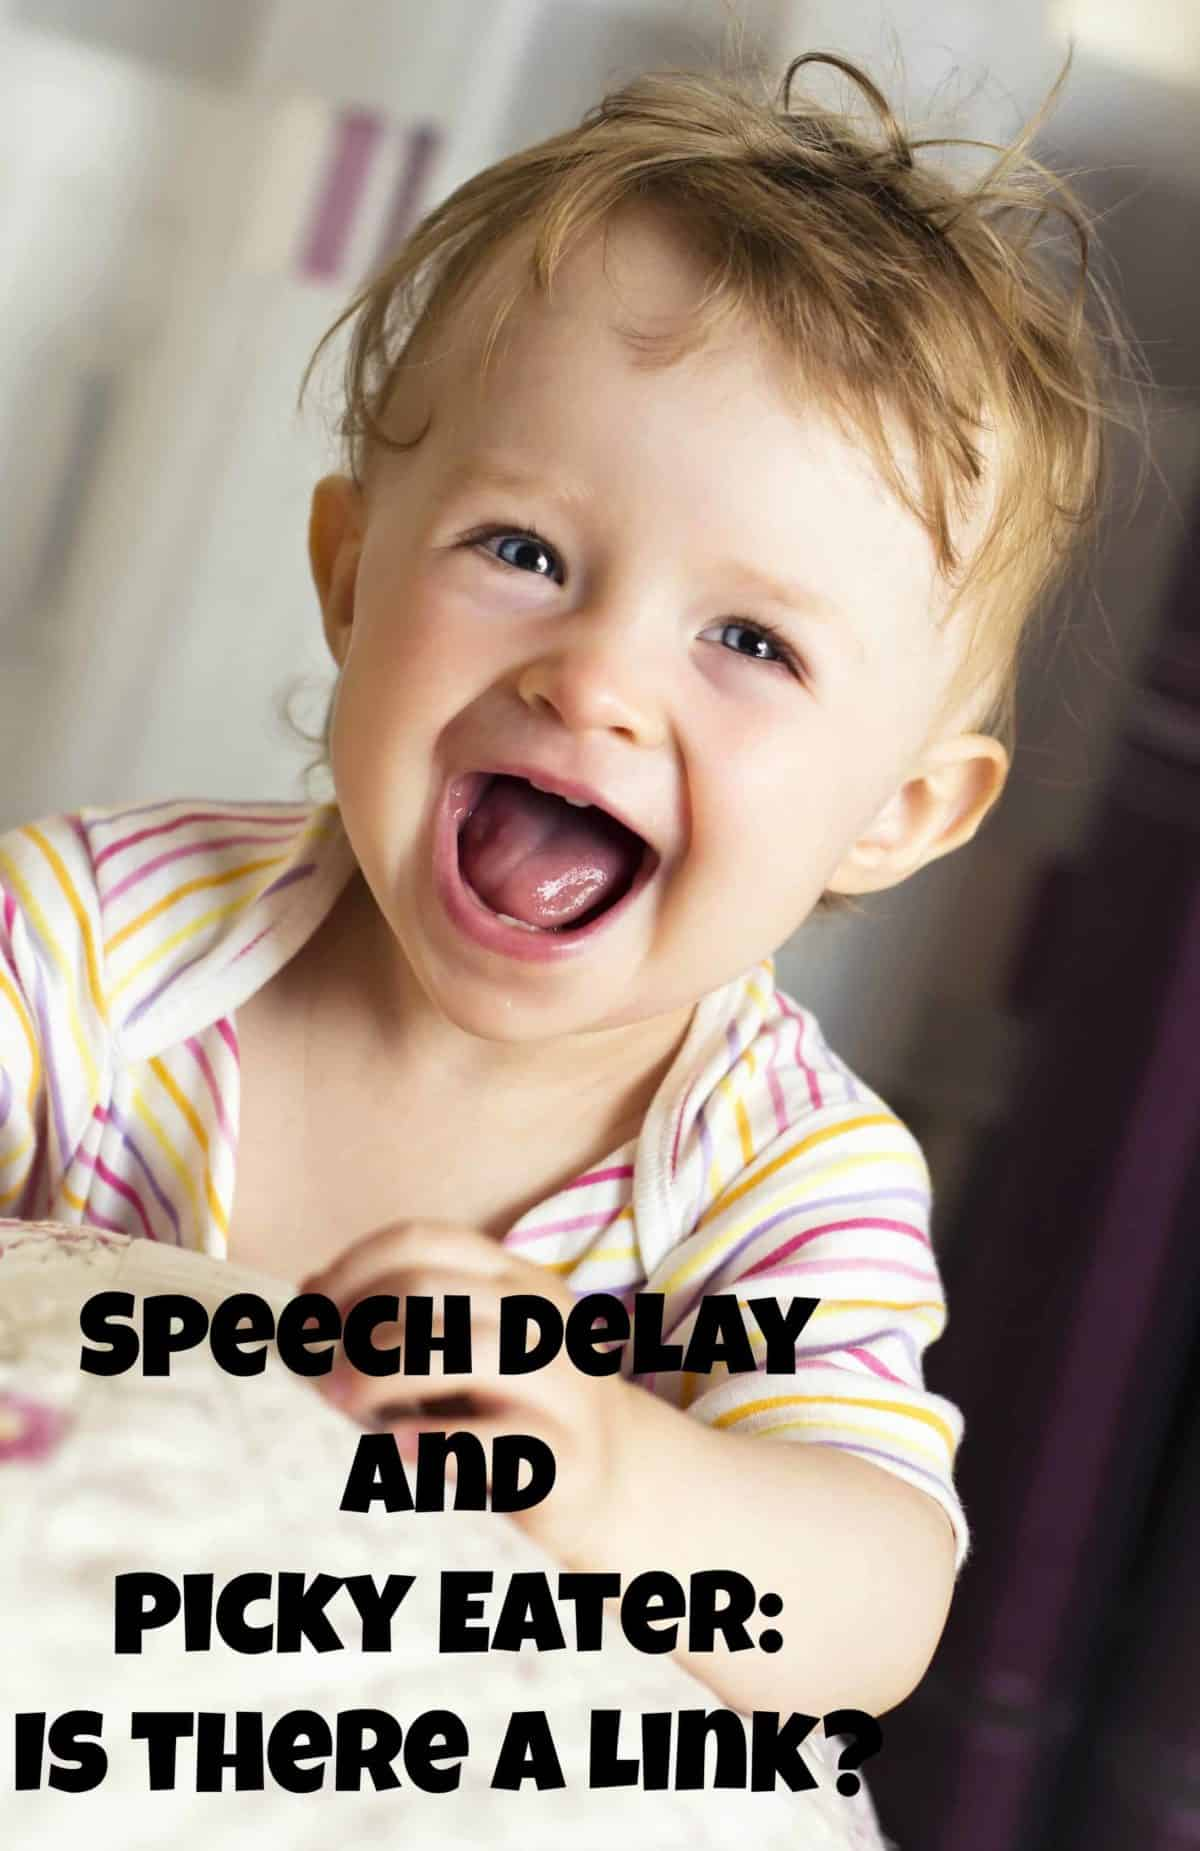 Wondering if there is a link between a toddler speech delay and your child being a picky eater? Check out the results of our research and find out!